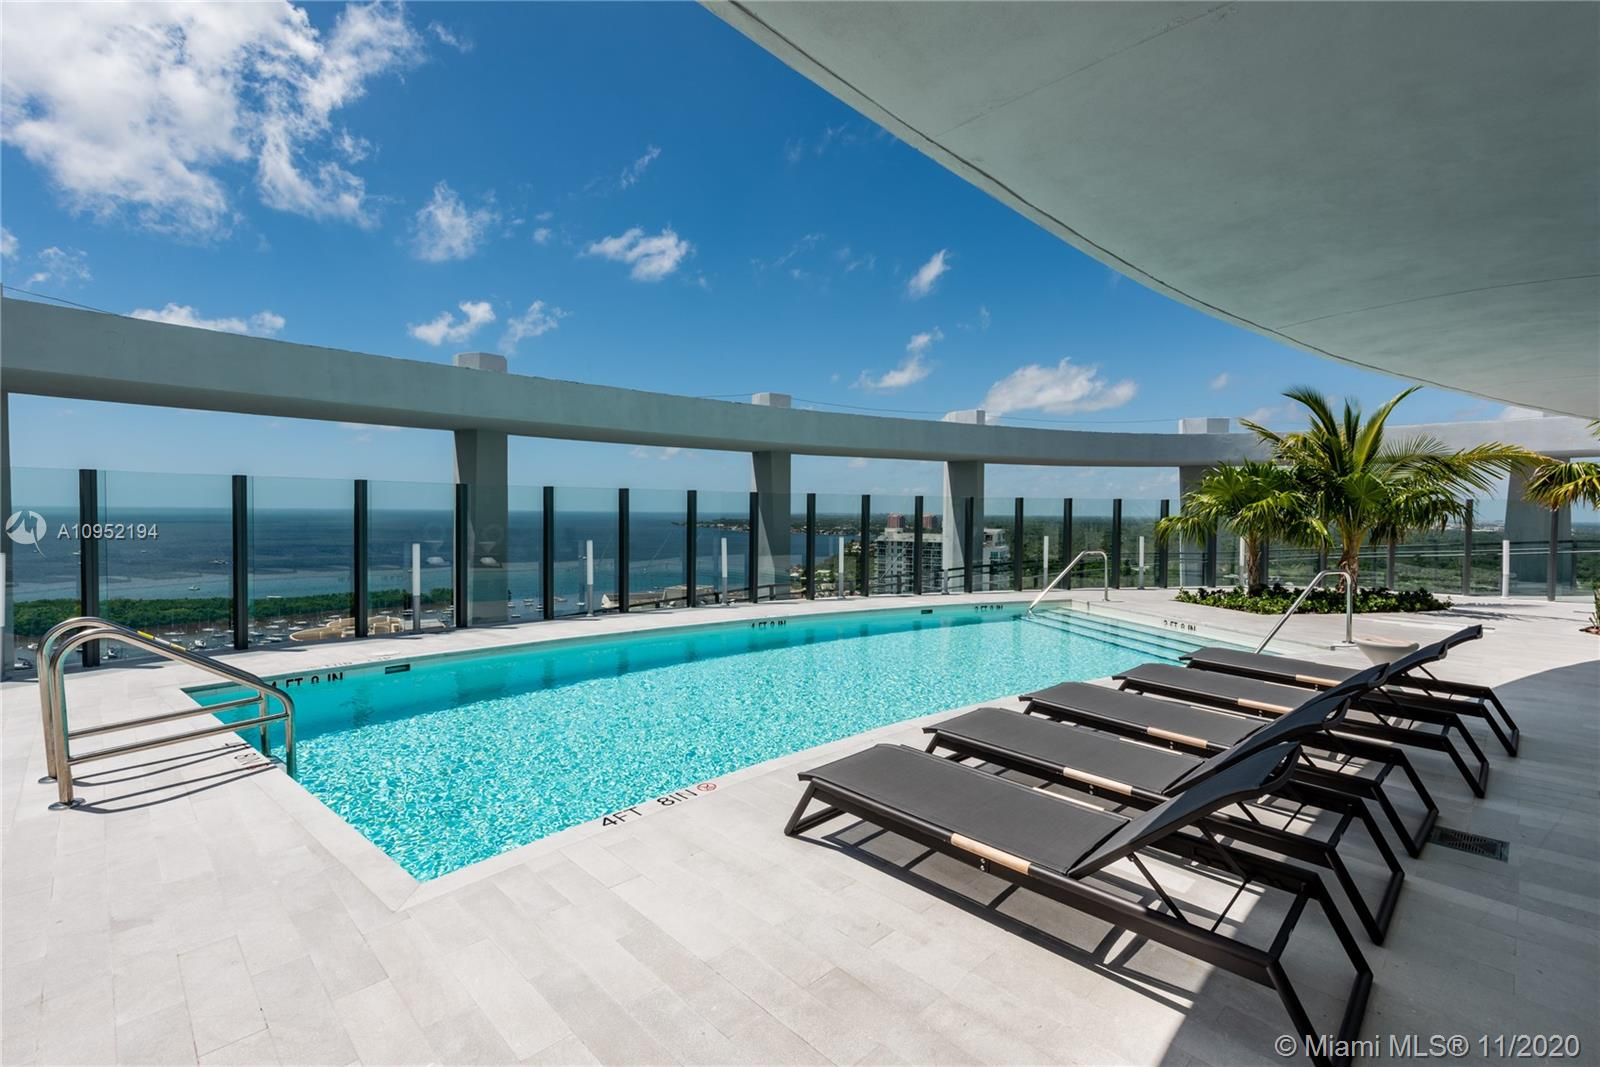 LUXURY RESORT PARK GROVE. 2 BED + DEN/ 2 BATHS LOCATED IN THE HEART OF COCONUT GROVE. 5 ACRES OF LUSH GARDENS DESIGNED BY ENZO ENEA.10 FT CEILINGS, TOP OF THE LINE APPLIANCES, WOLF STOVE AND SUBZERO REFRIGERATOR. ROOF TOP POOL GYM, KIDS ROOM, WINE STORAGE, BAR AND MORE.